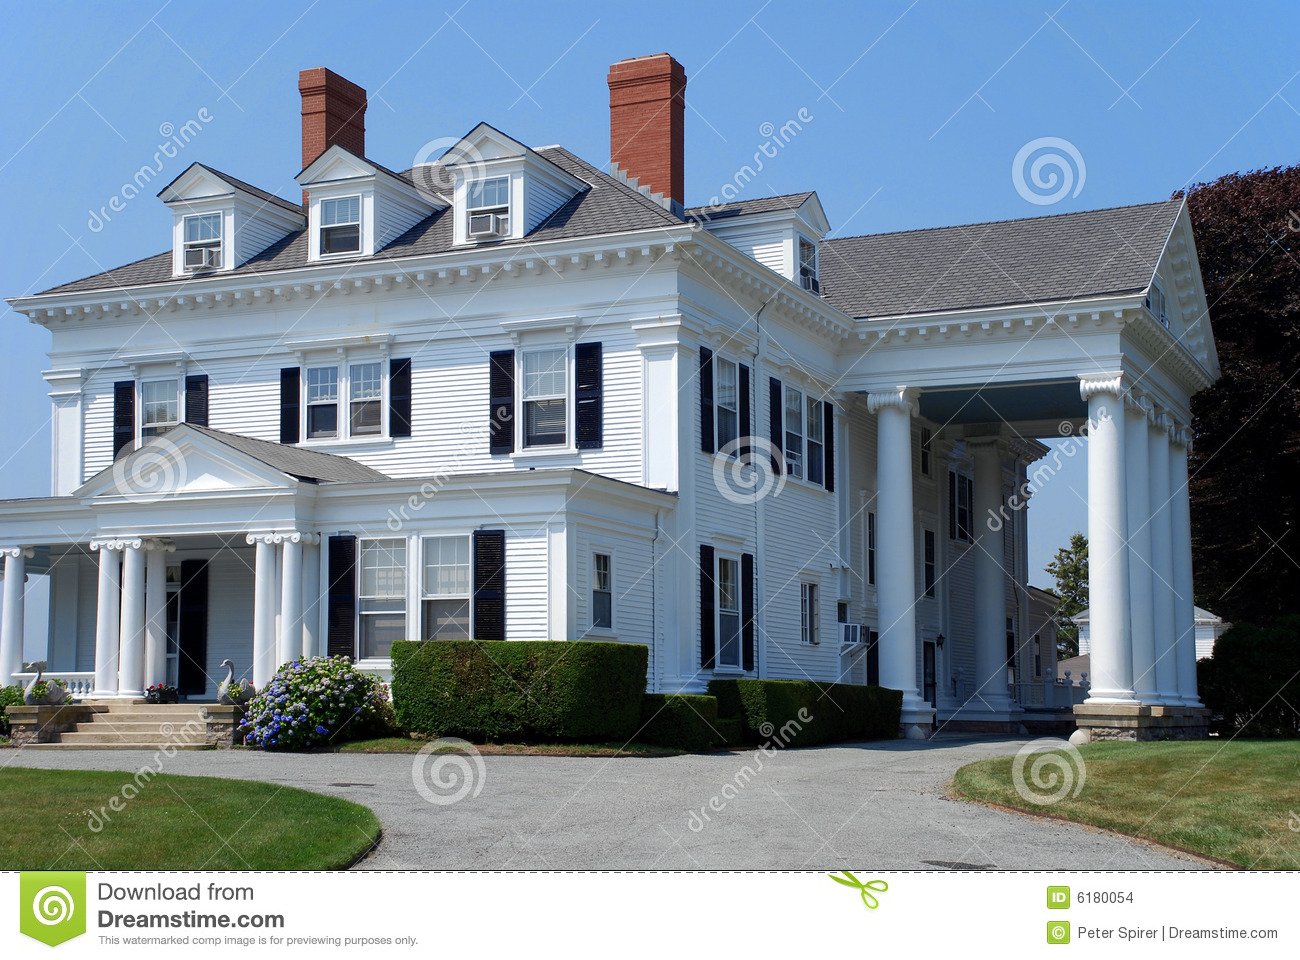 Large white house with columns